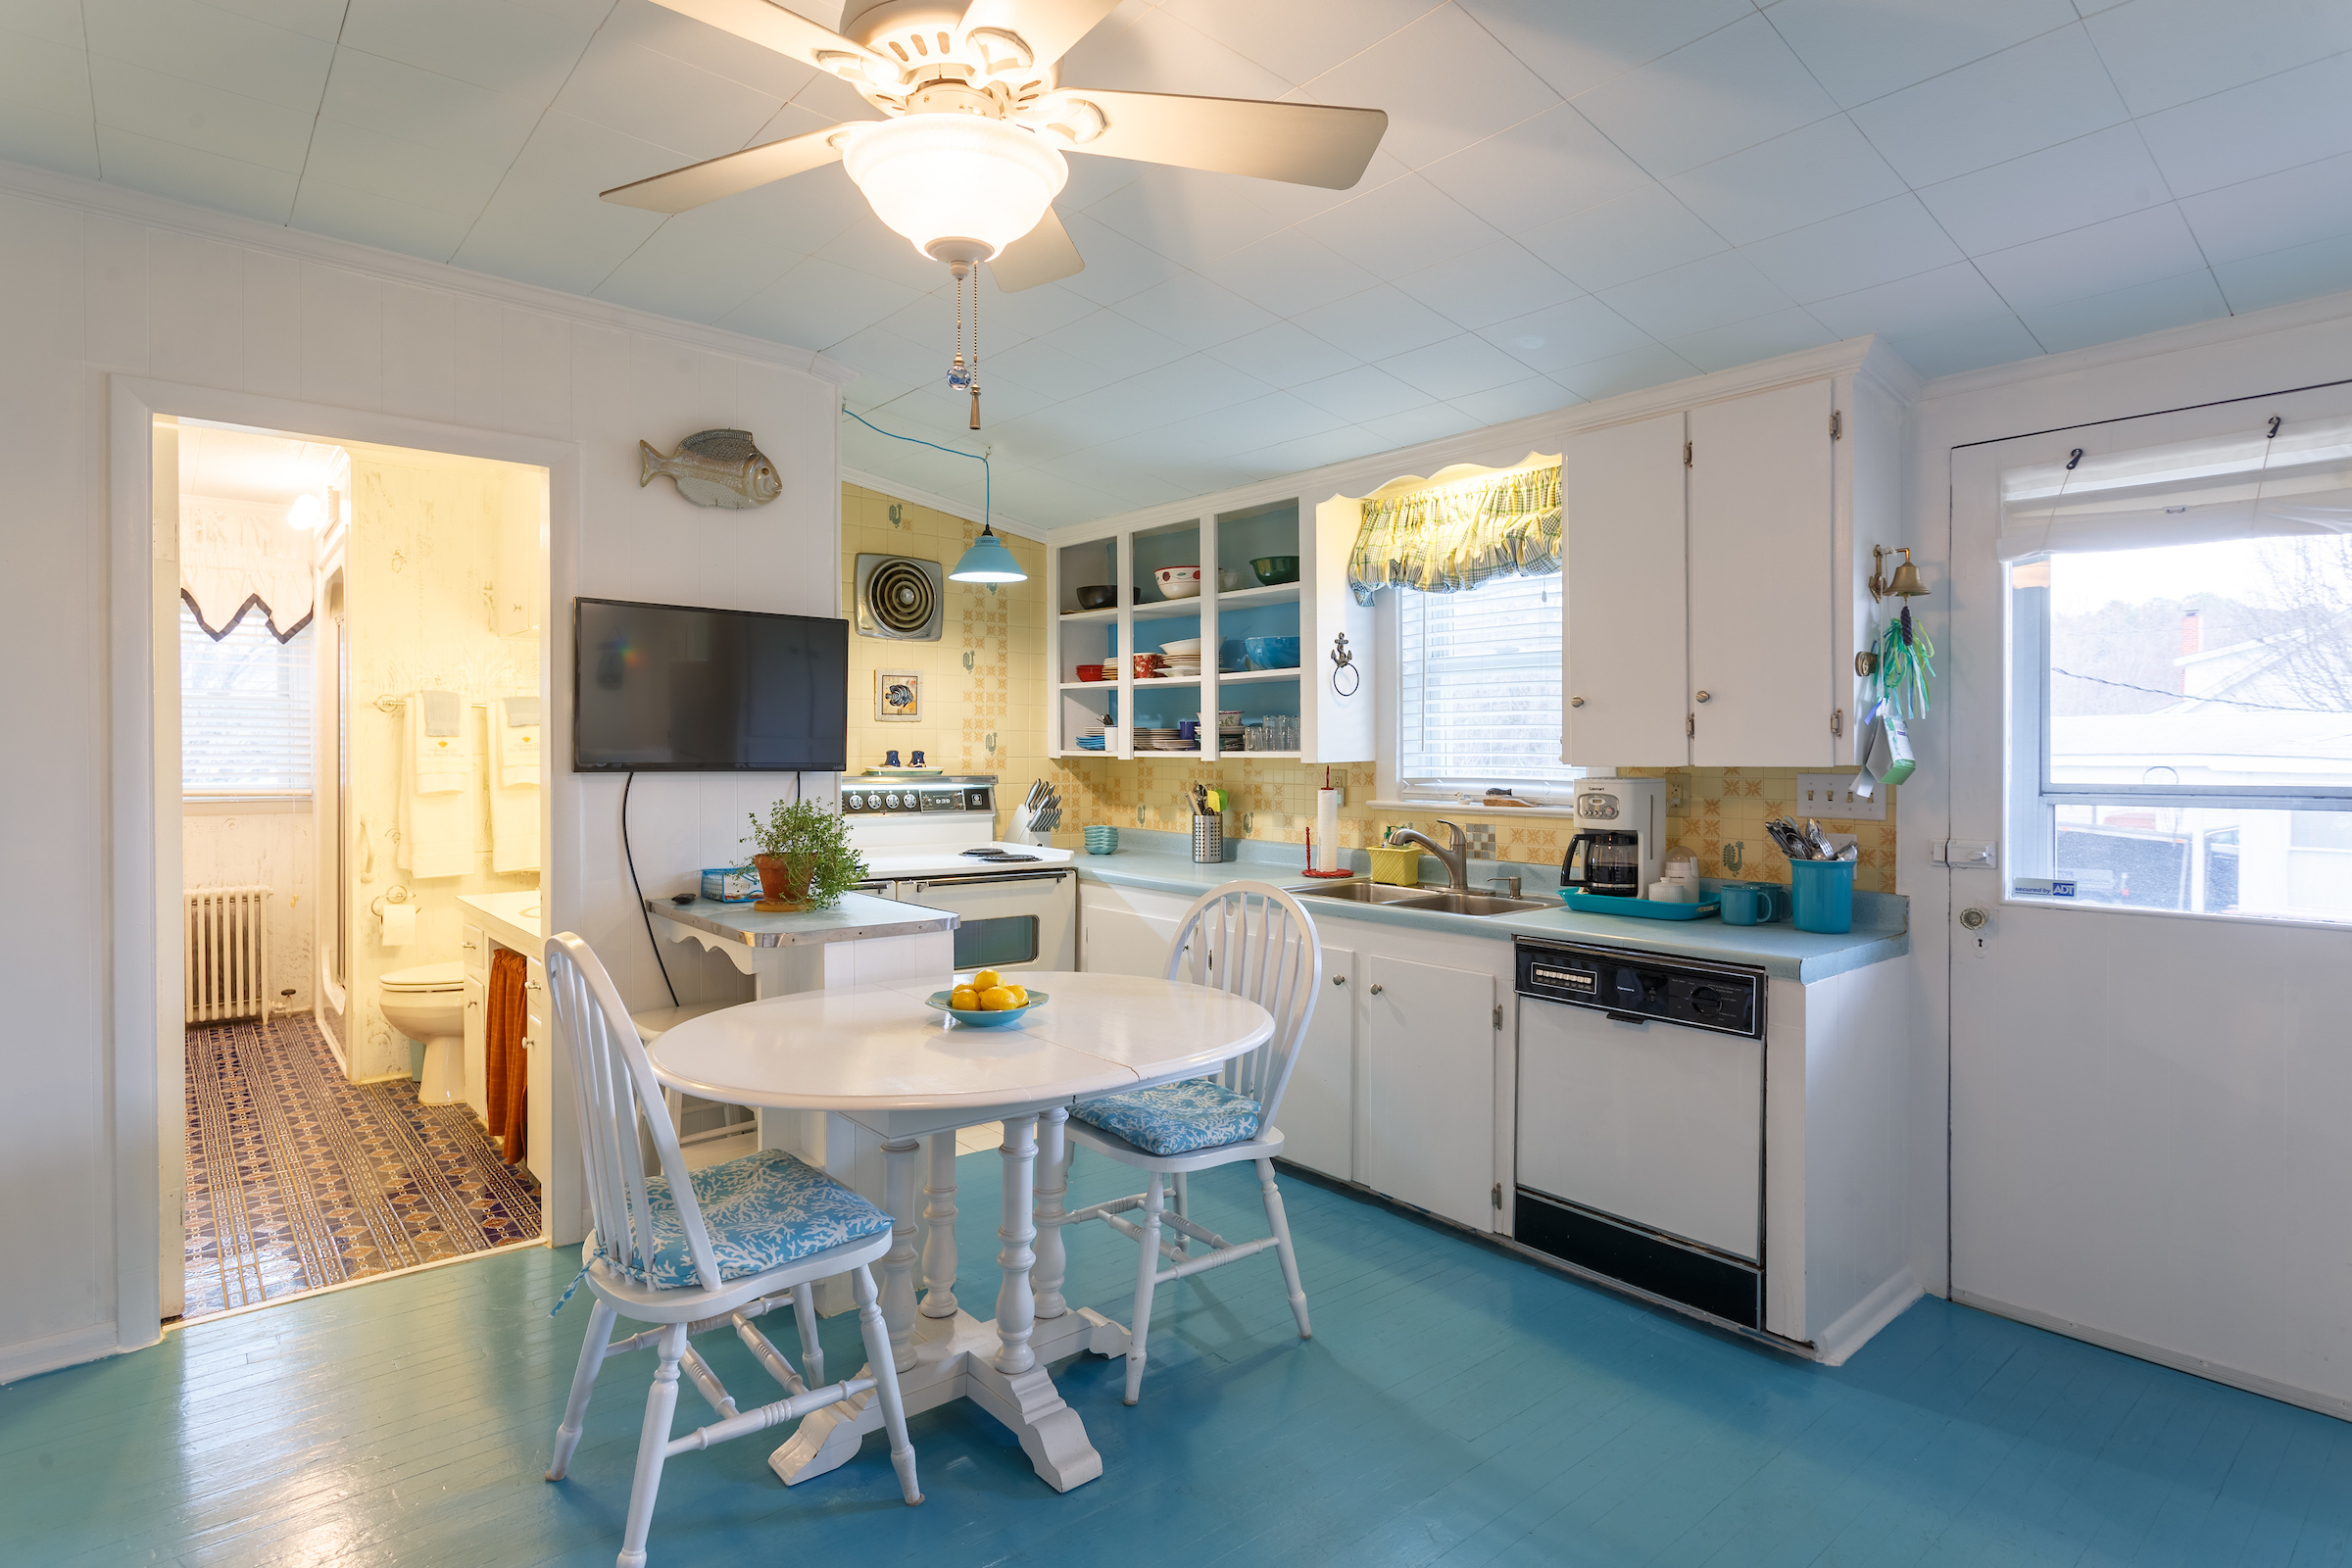 5707Hawthorne-11 - Your Rock Hall Real Estate Connection